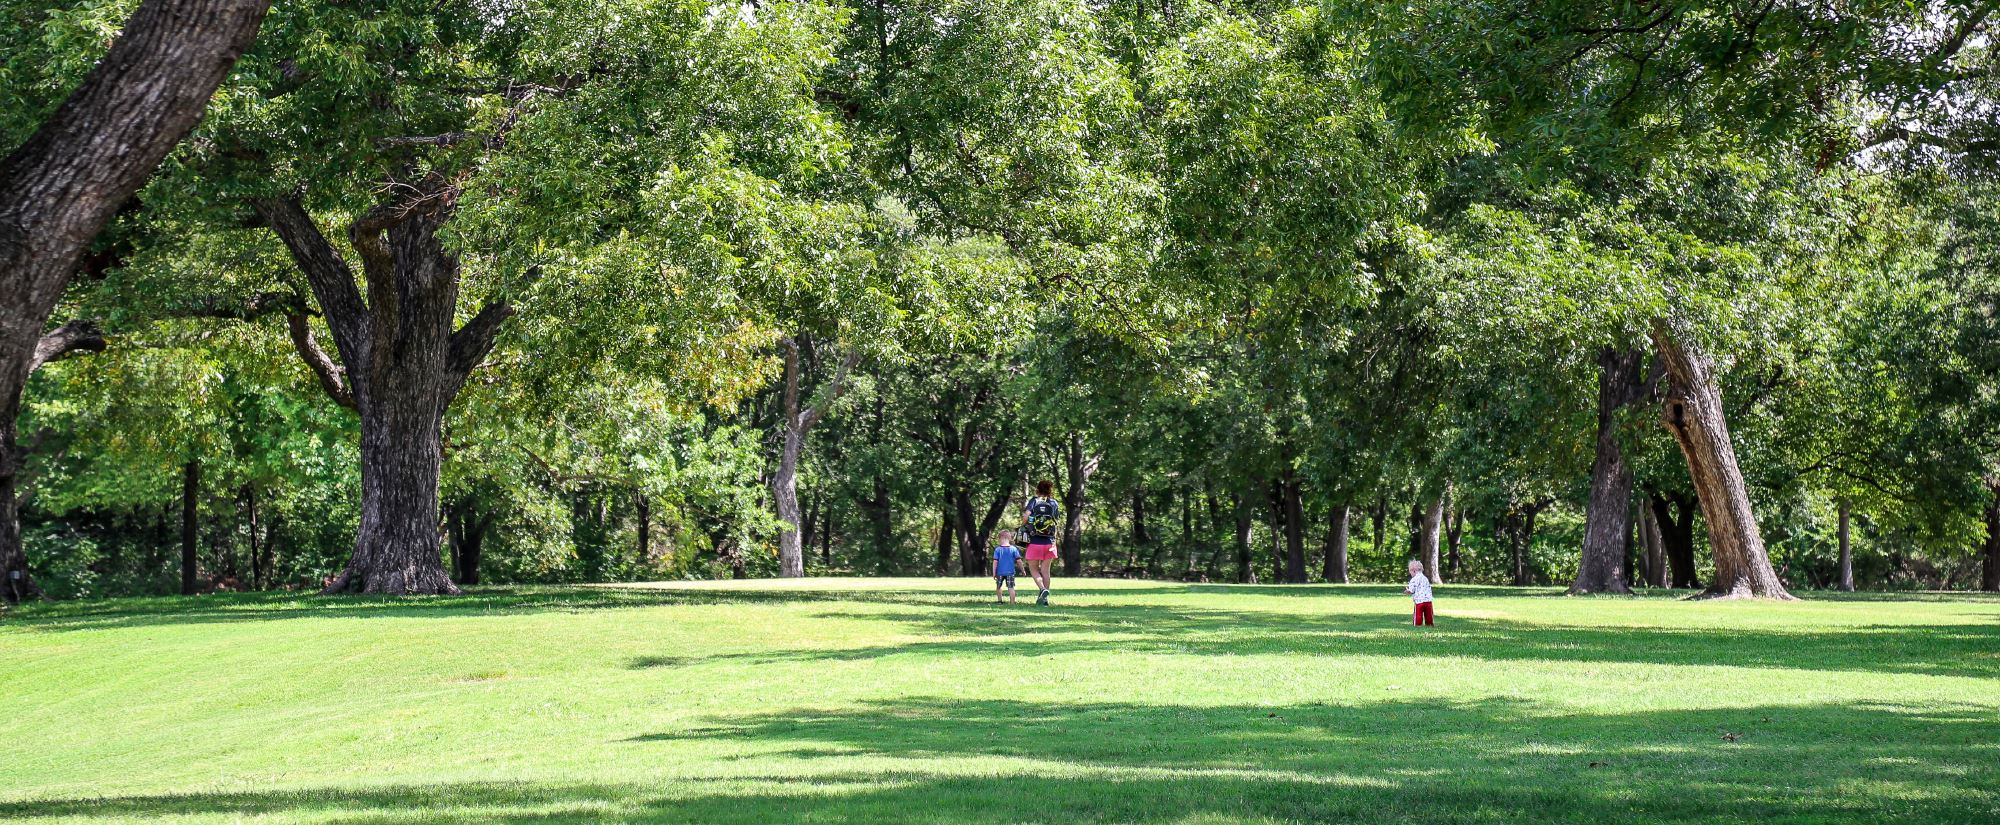 Pecan Grove Park lawn and trees